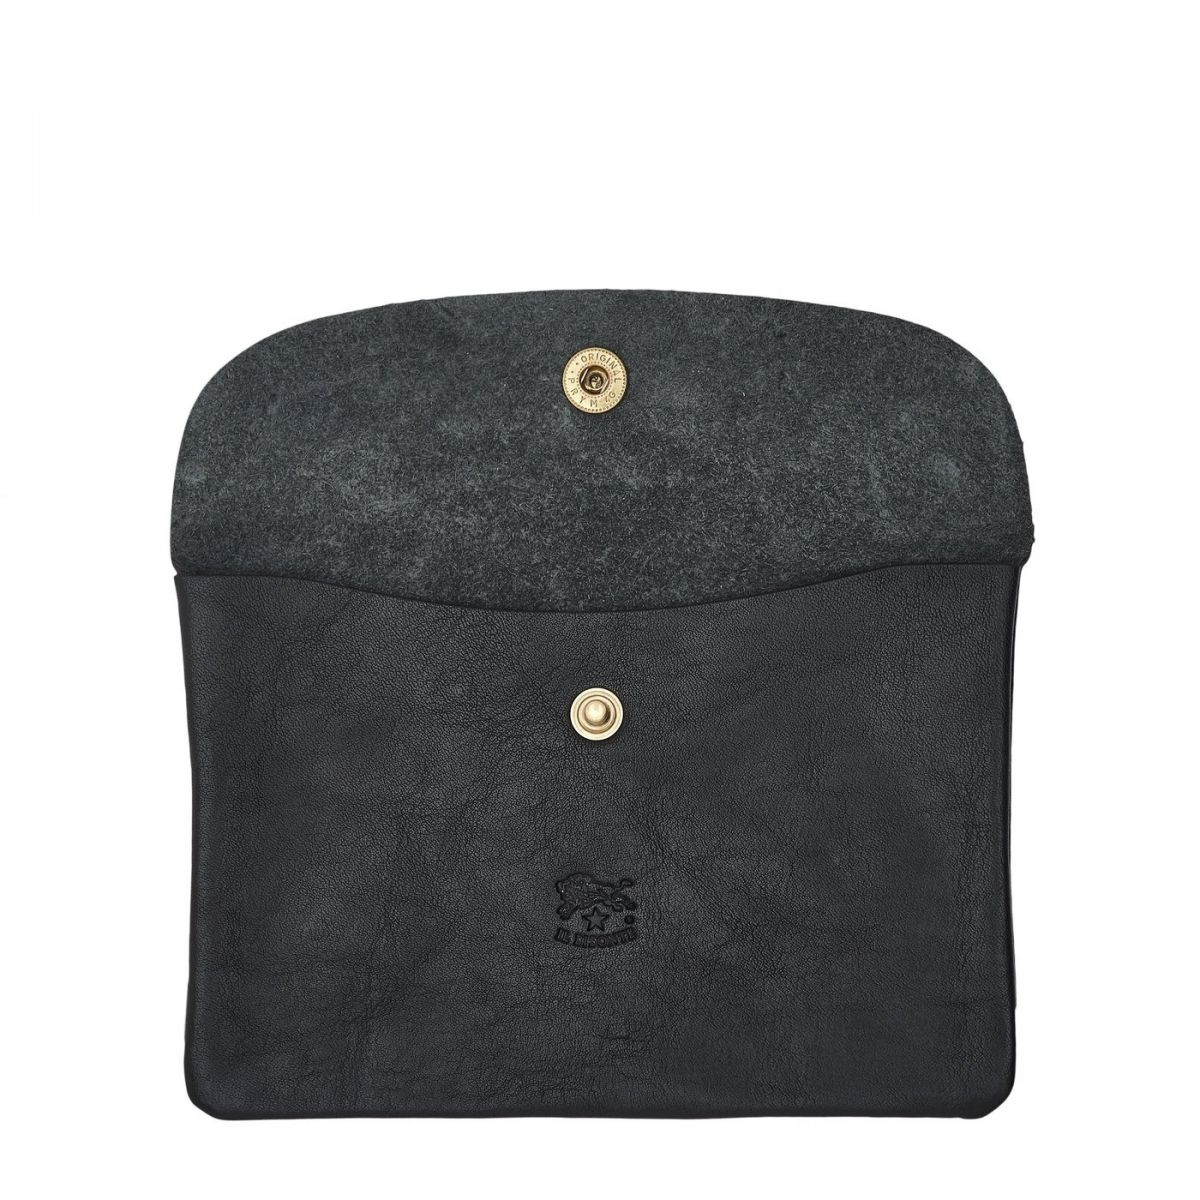 Case  in Cowhide Double Leather SCA007 color Black | Details